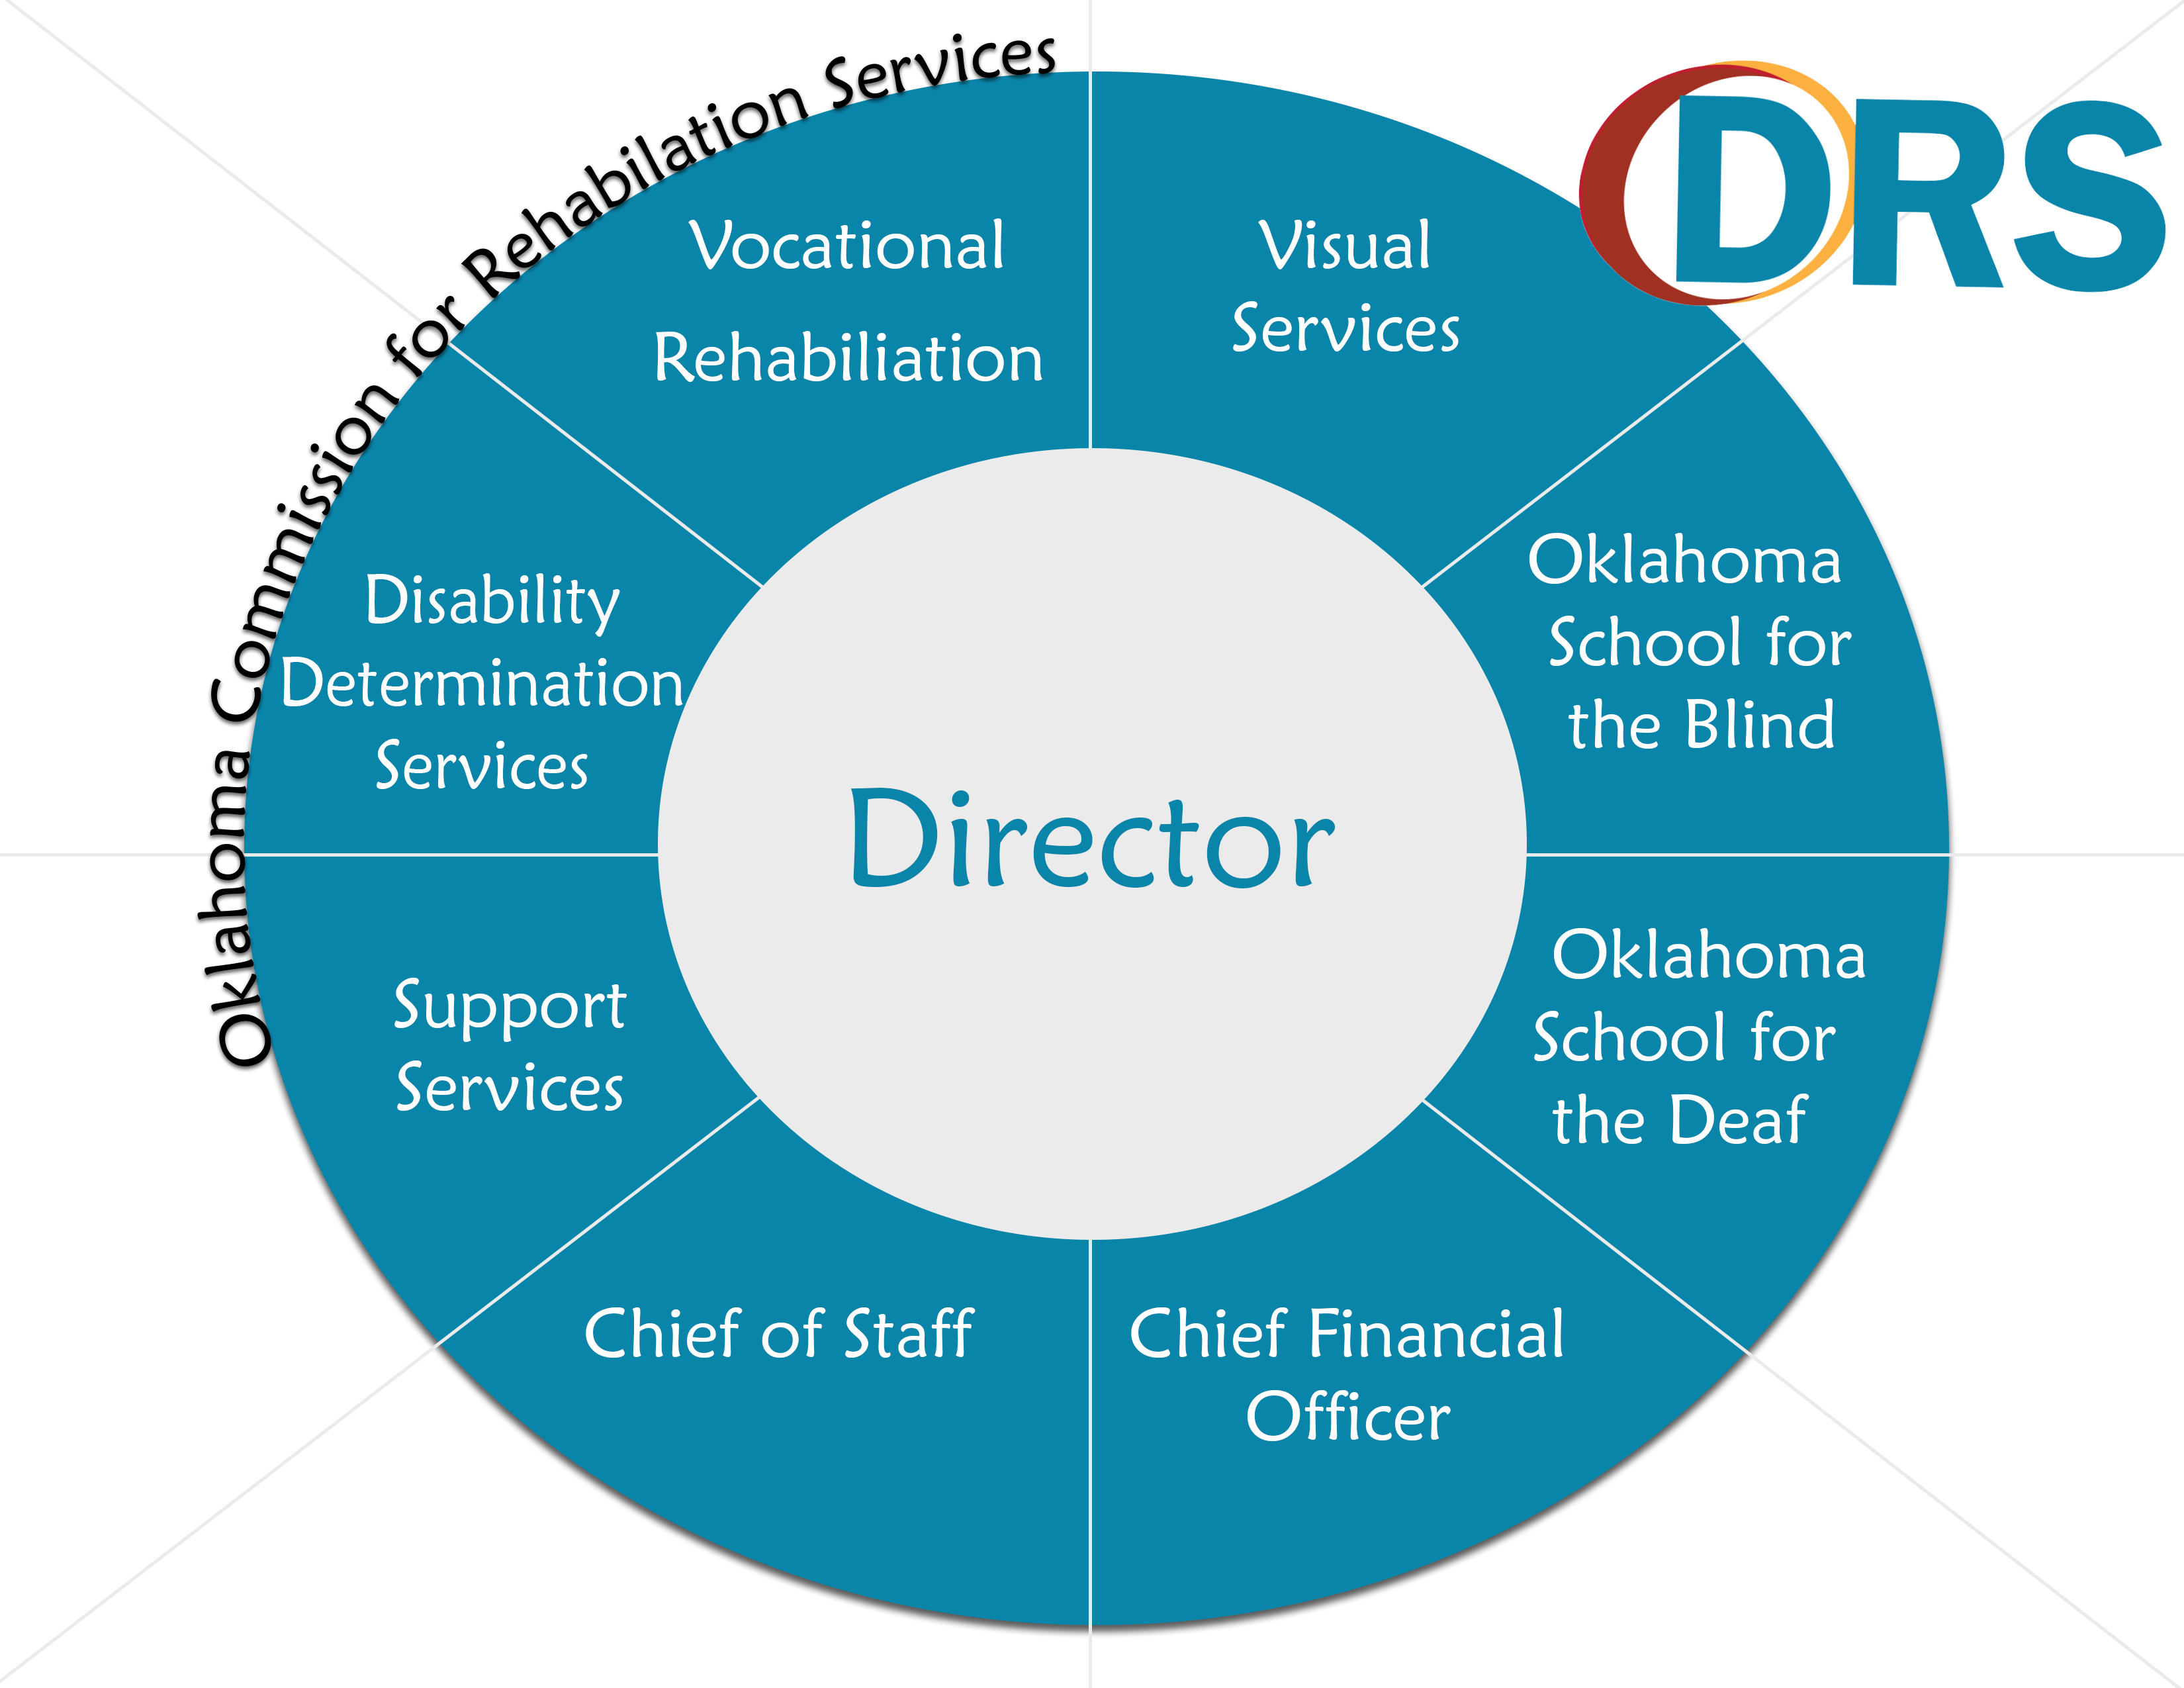 The center circle is labeled director. The outer circle is sectioned eight times with each division listed. Outside is the Oklahoma Commission for Rehabilitation label.